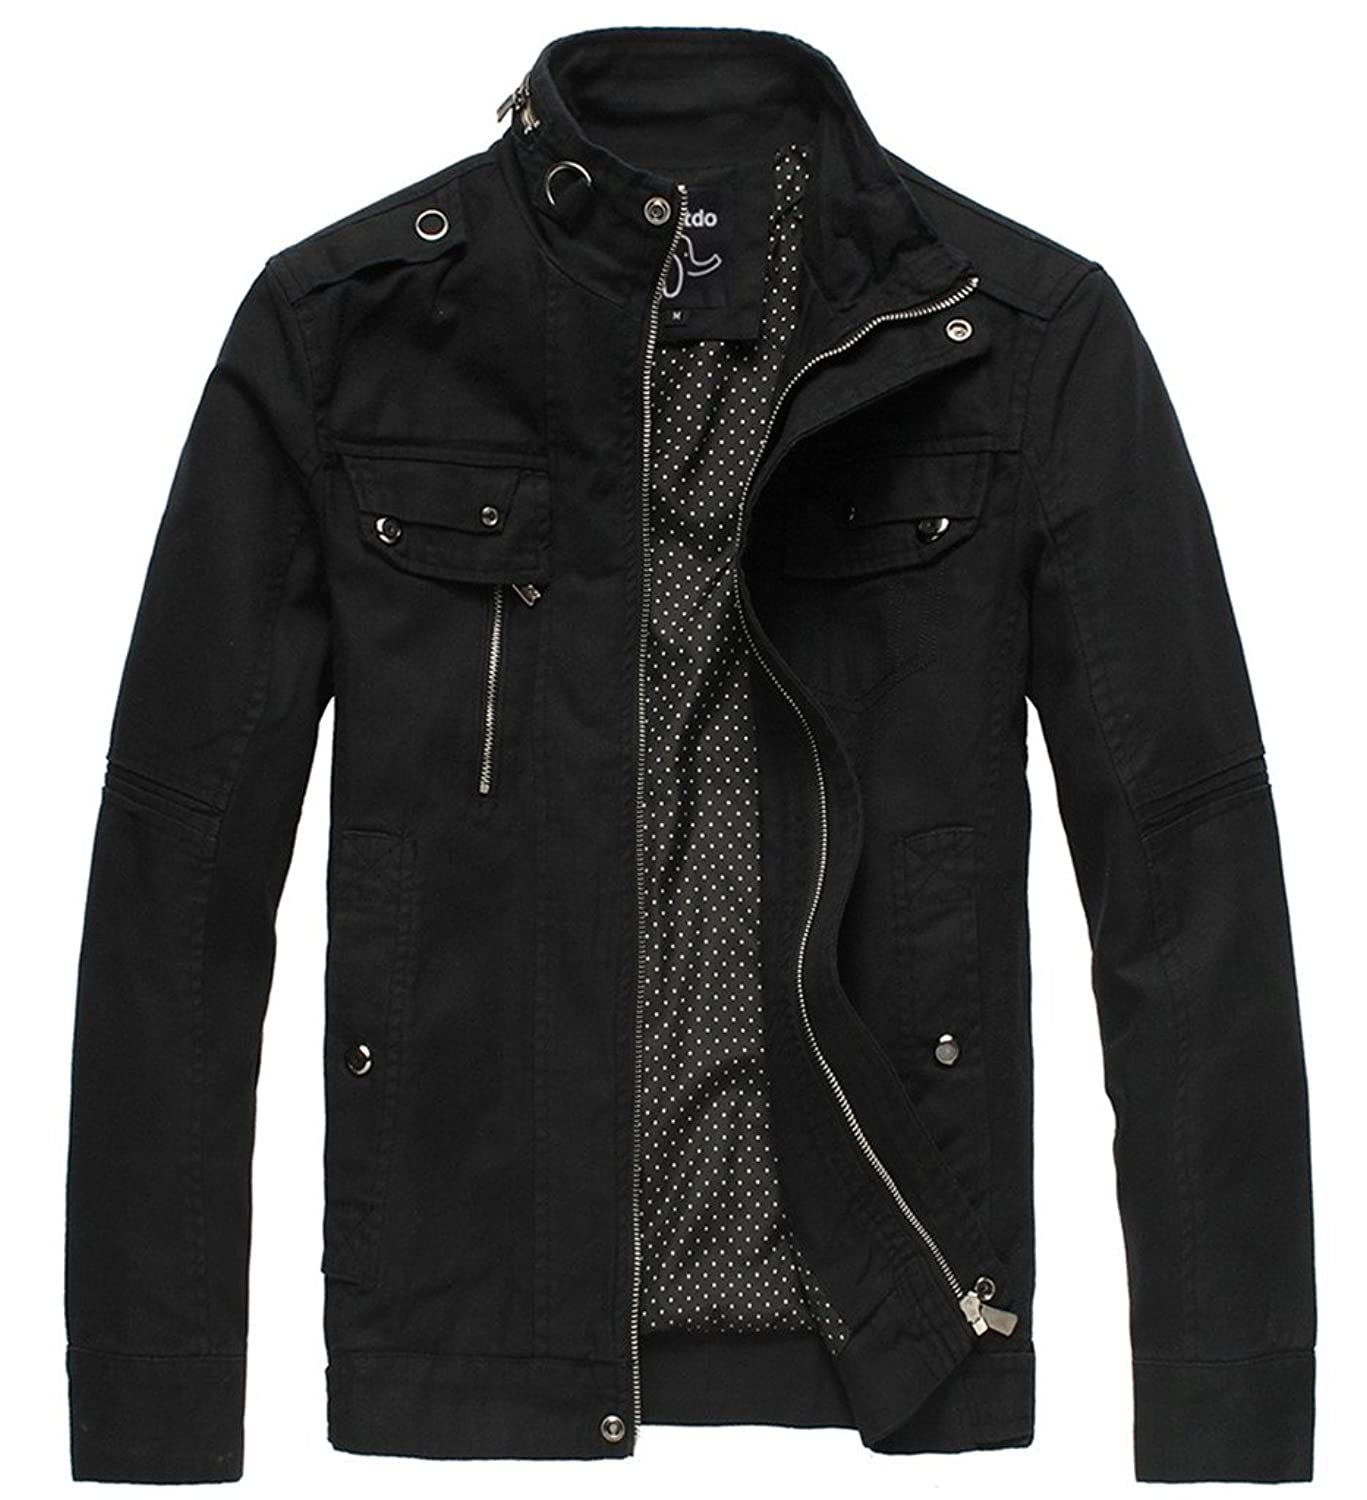 Jackets - Men's Jacket Collection - REISS71,+ followers on Twitter.